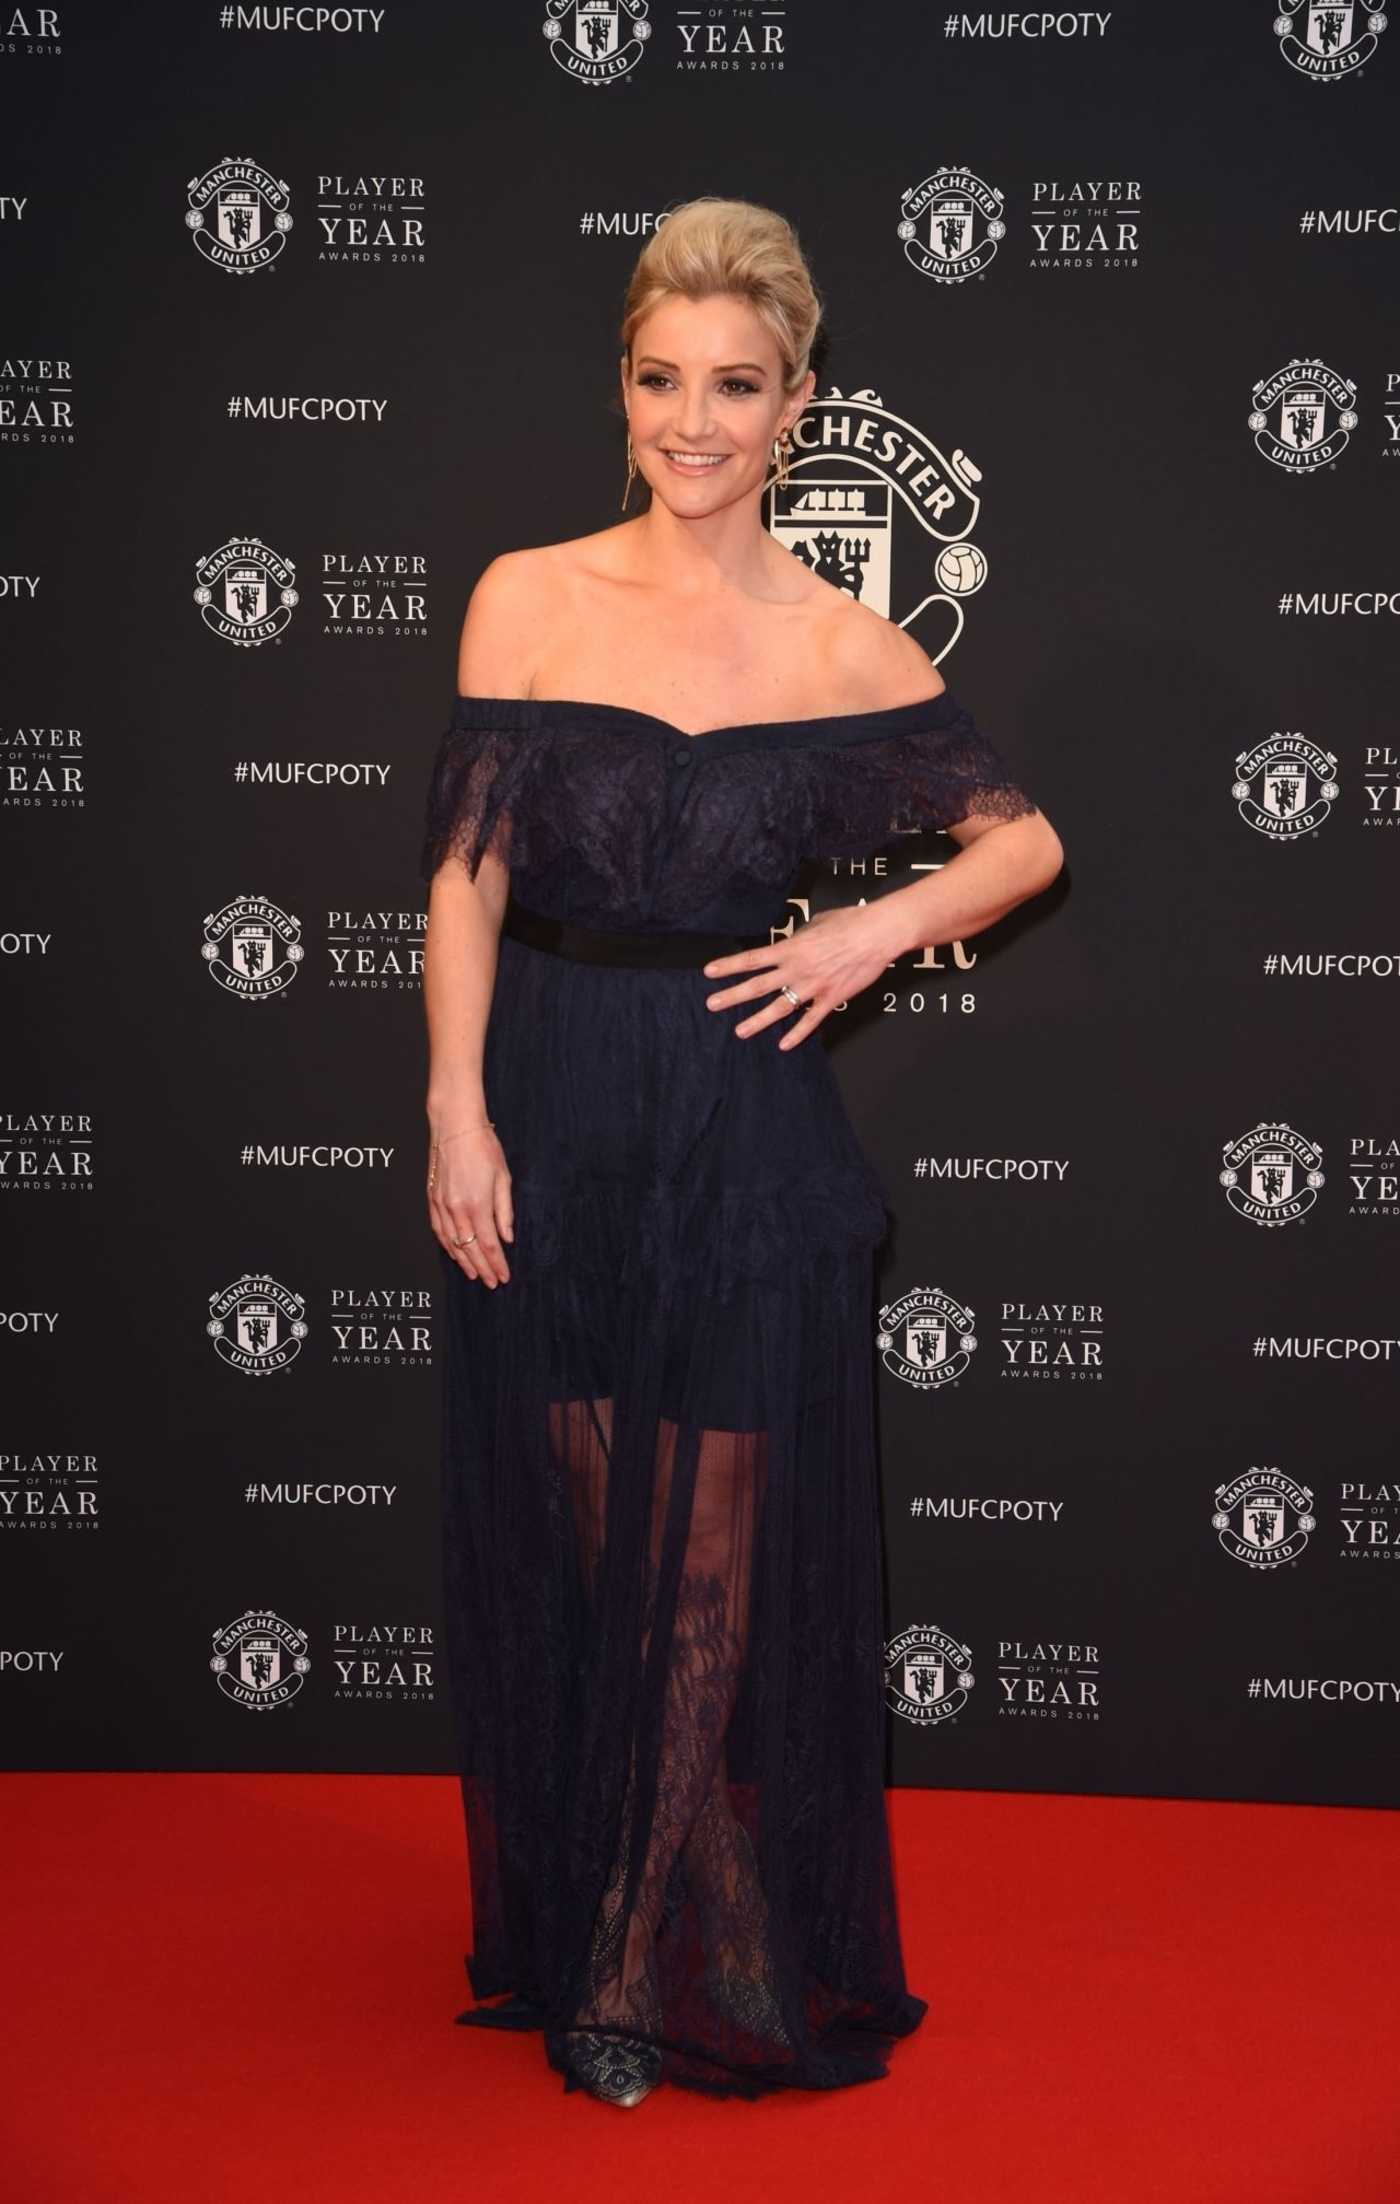 Helen Skelton at 2018 Manchester United Player of the Year Awards 05/01/2018